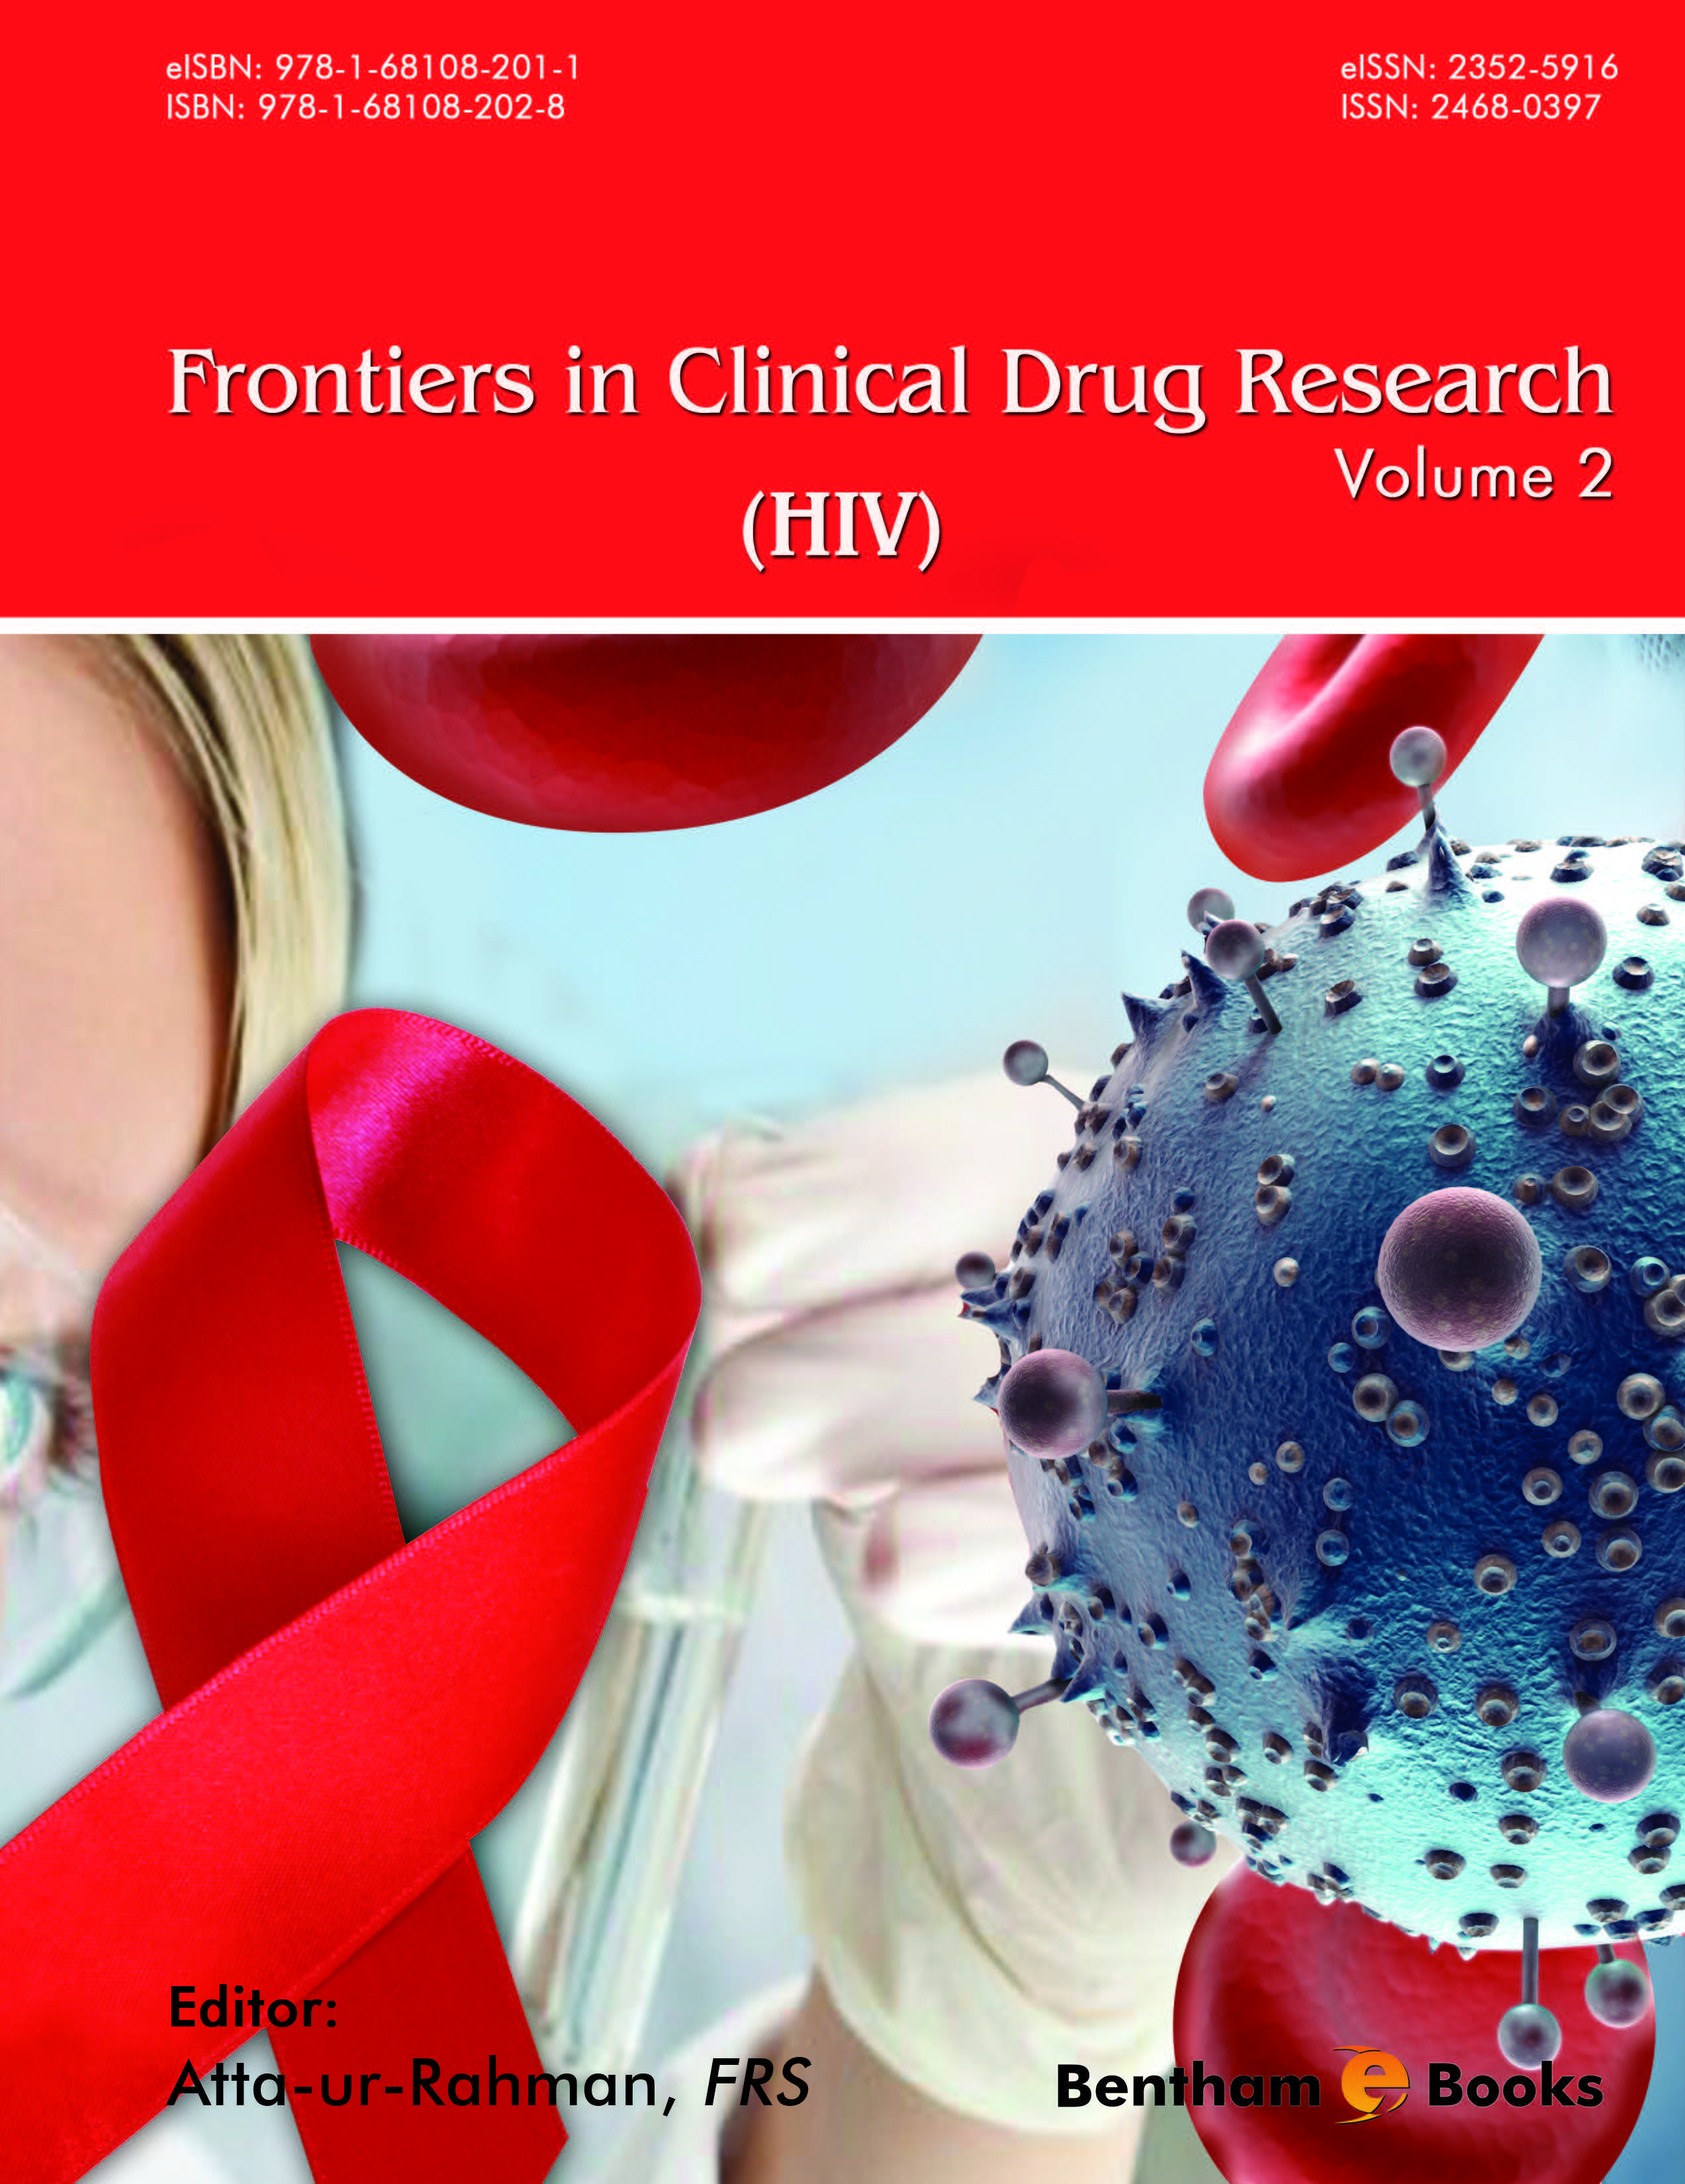 Frontiers in Clinical Drug Research - HIV